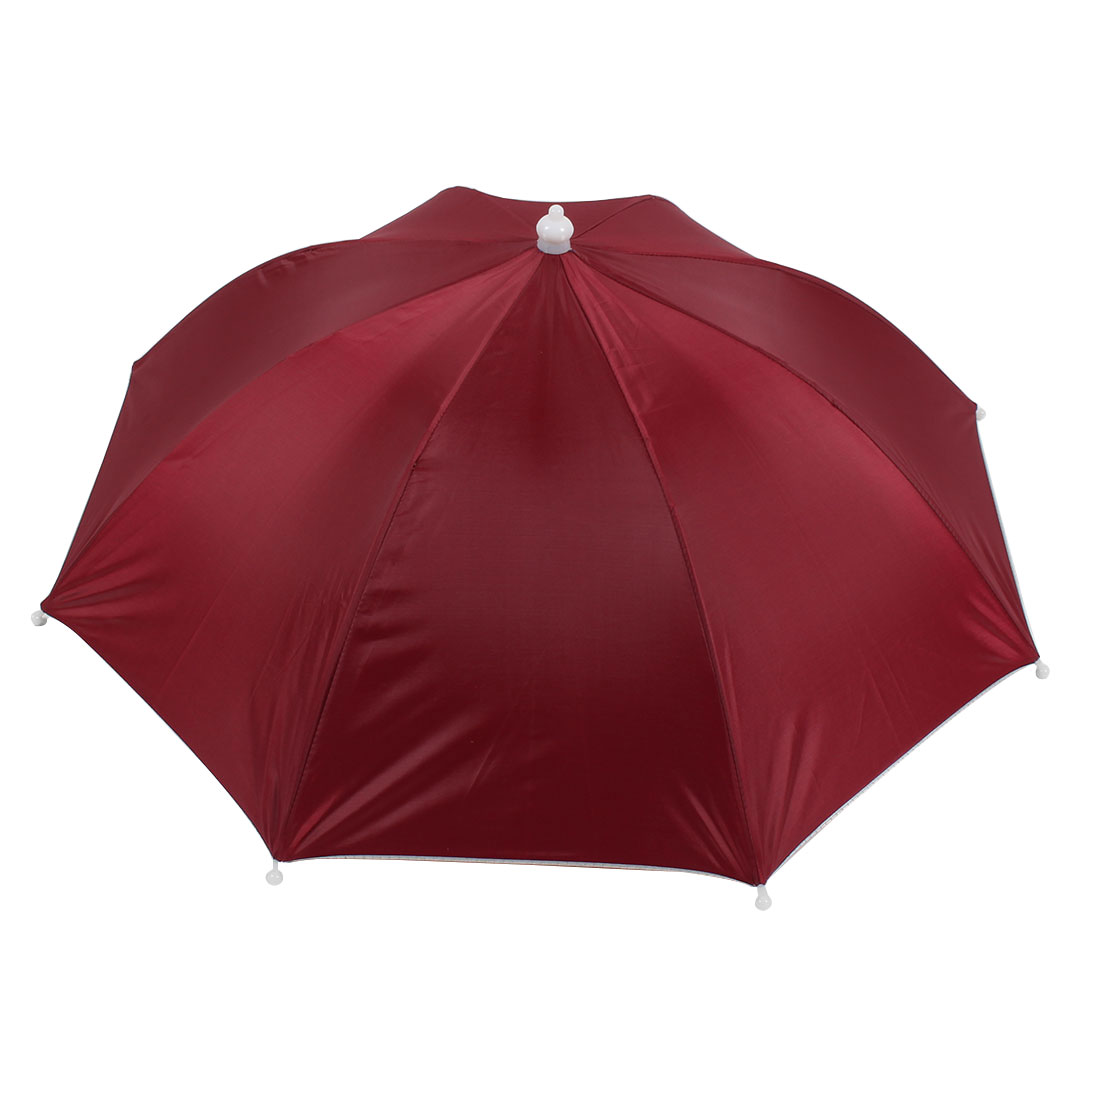 Outdoor Sports Fishing Umbrella Hat Headwear Burgundy